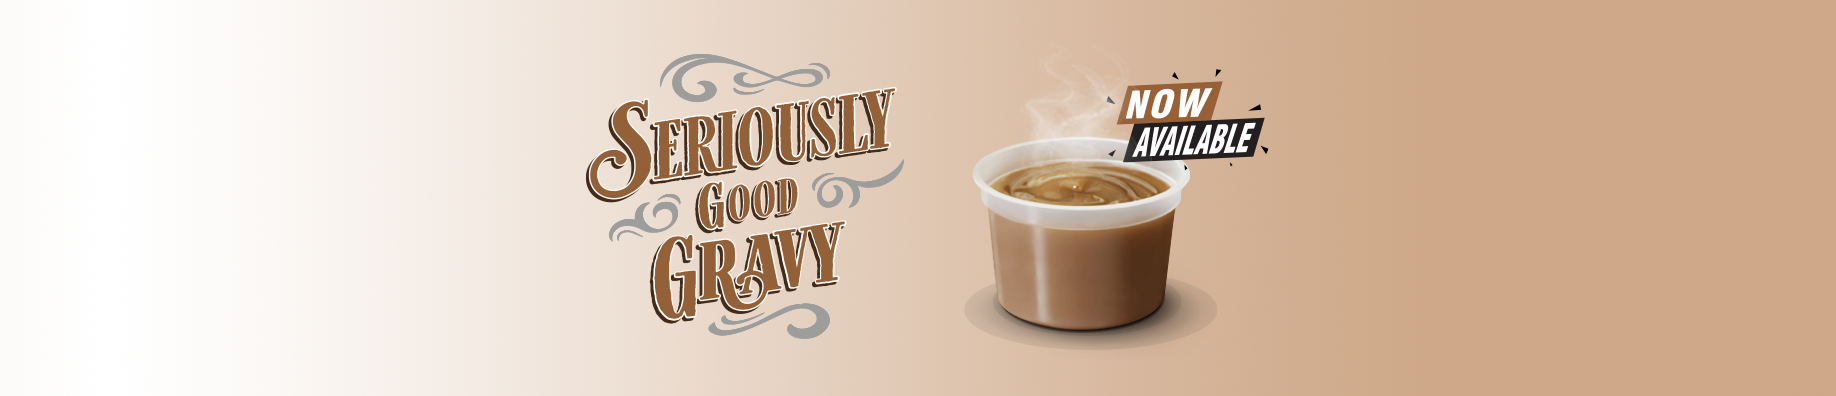 DIBS Gravy Available Now.png